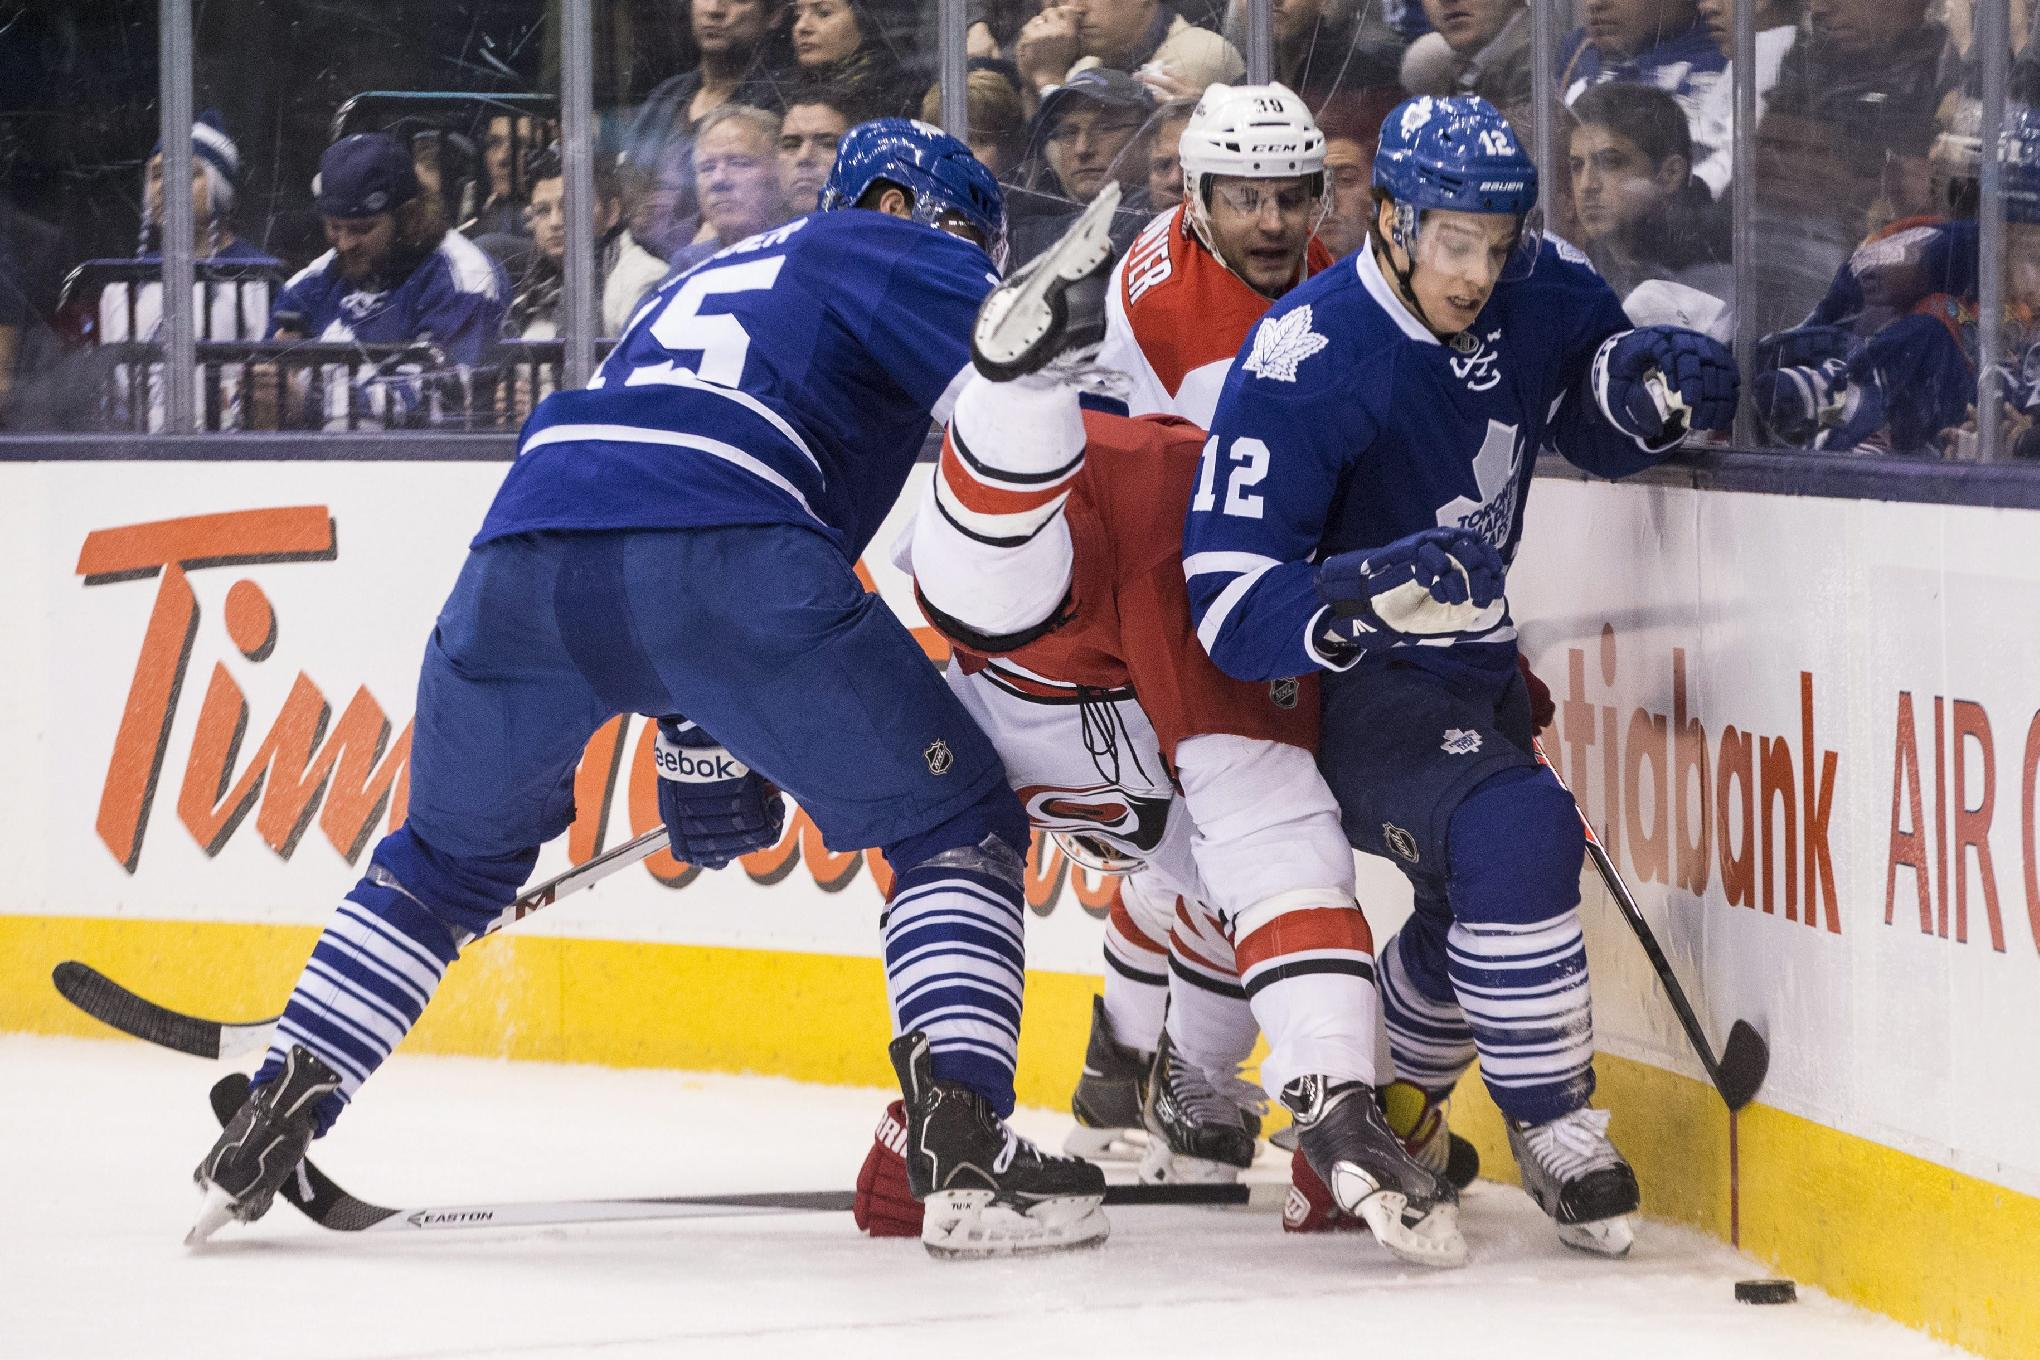 Toronto Maple Leafs' Paul Ranger, left, and Mason Raymond, right, upend Carolina Hurricanes' Drayson Bowman, center, as they battle for the puck against the boards during the third period of an NHL hockey game in Toronto on Sunday, Dec. 29, 2013